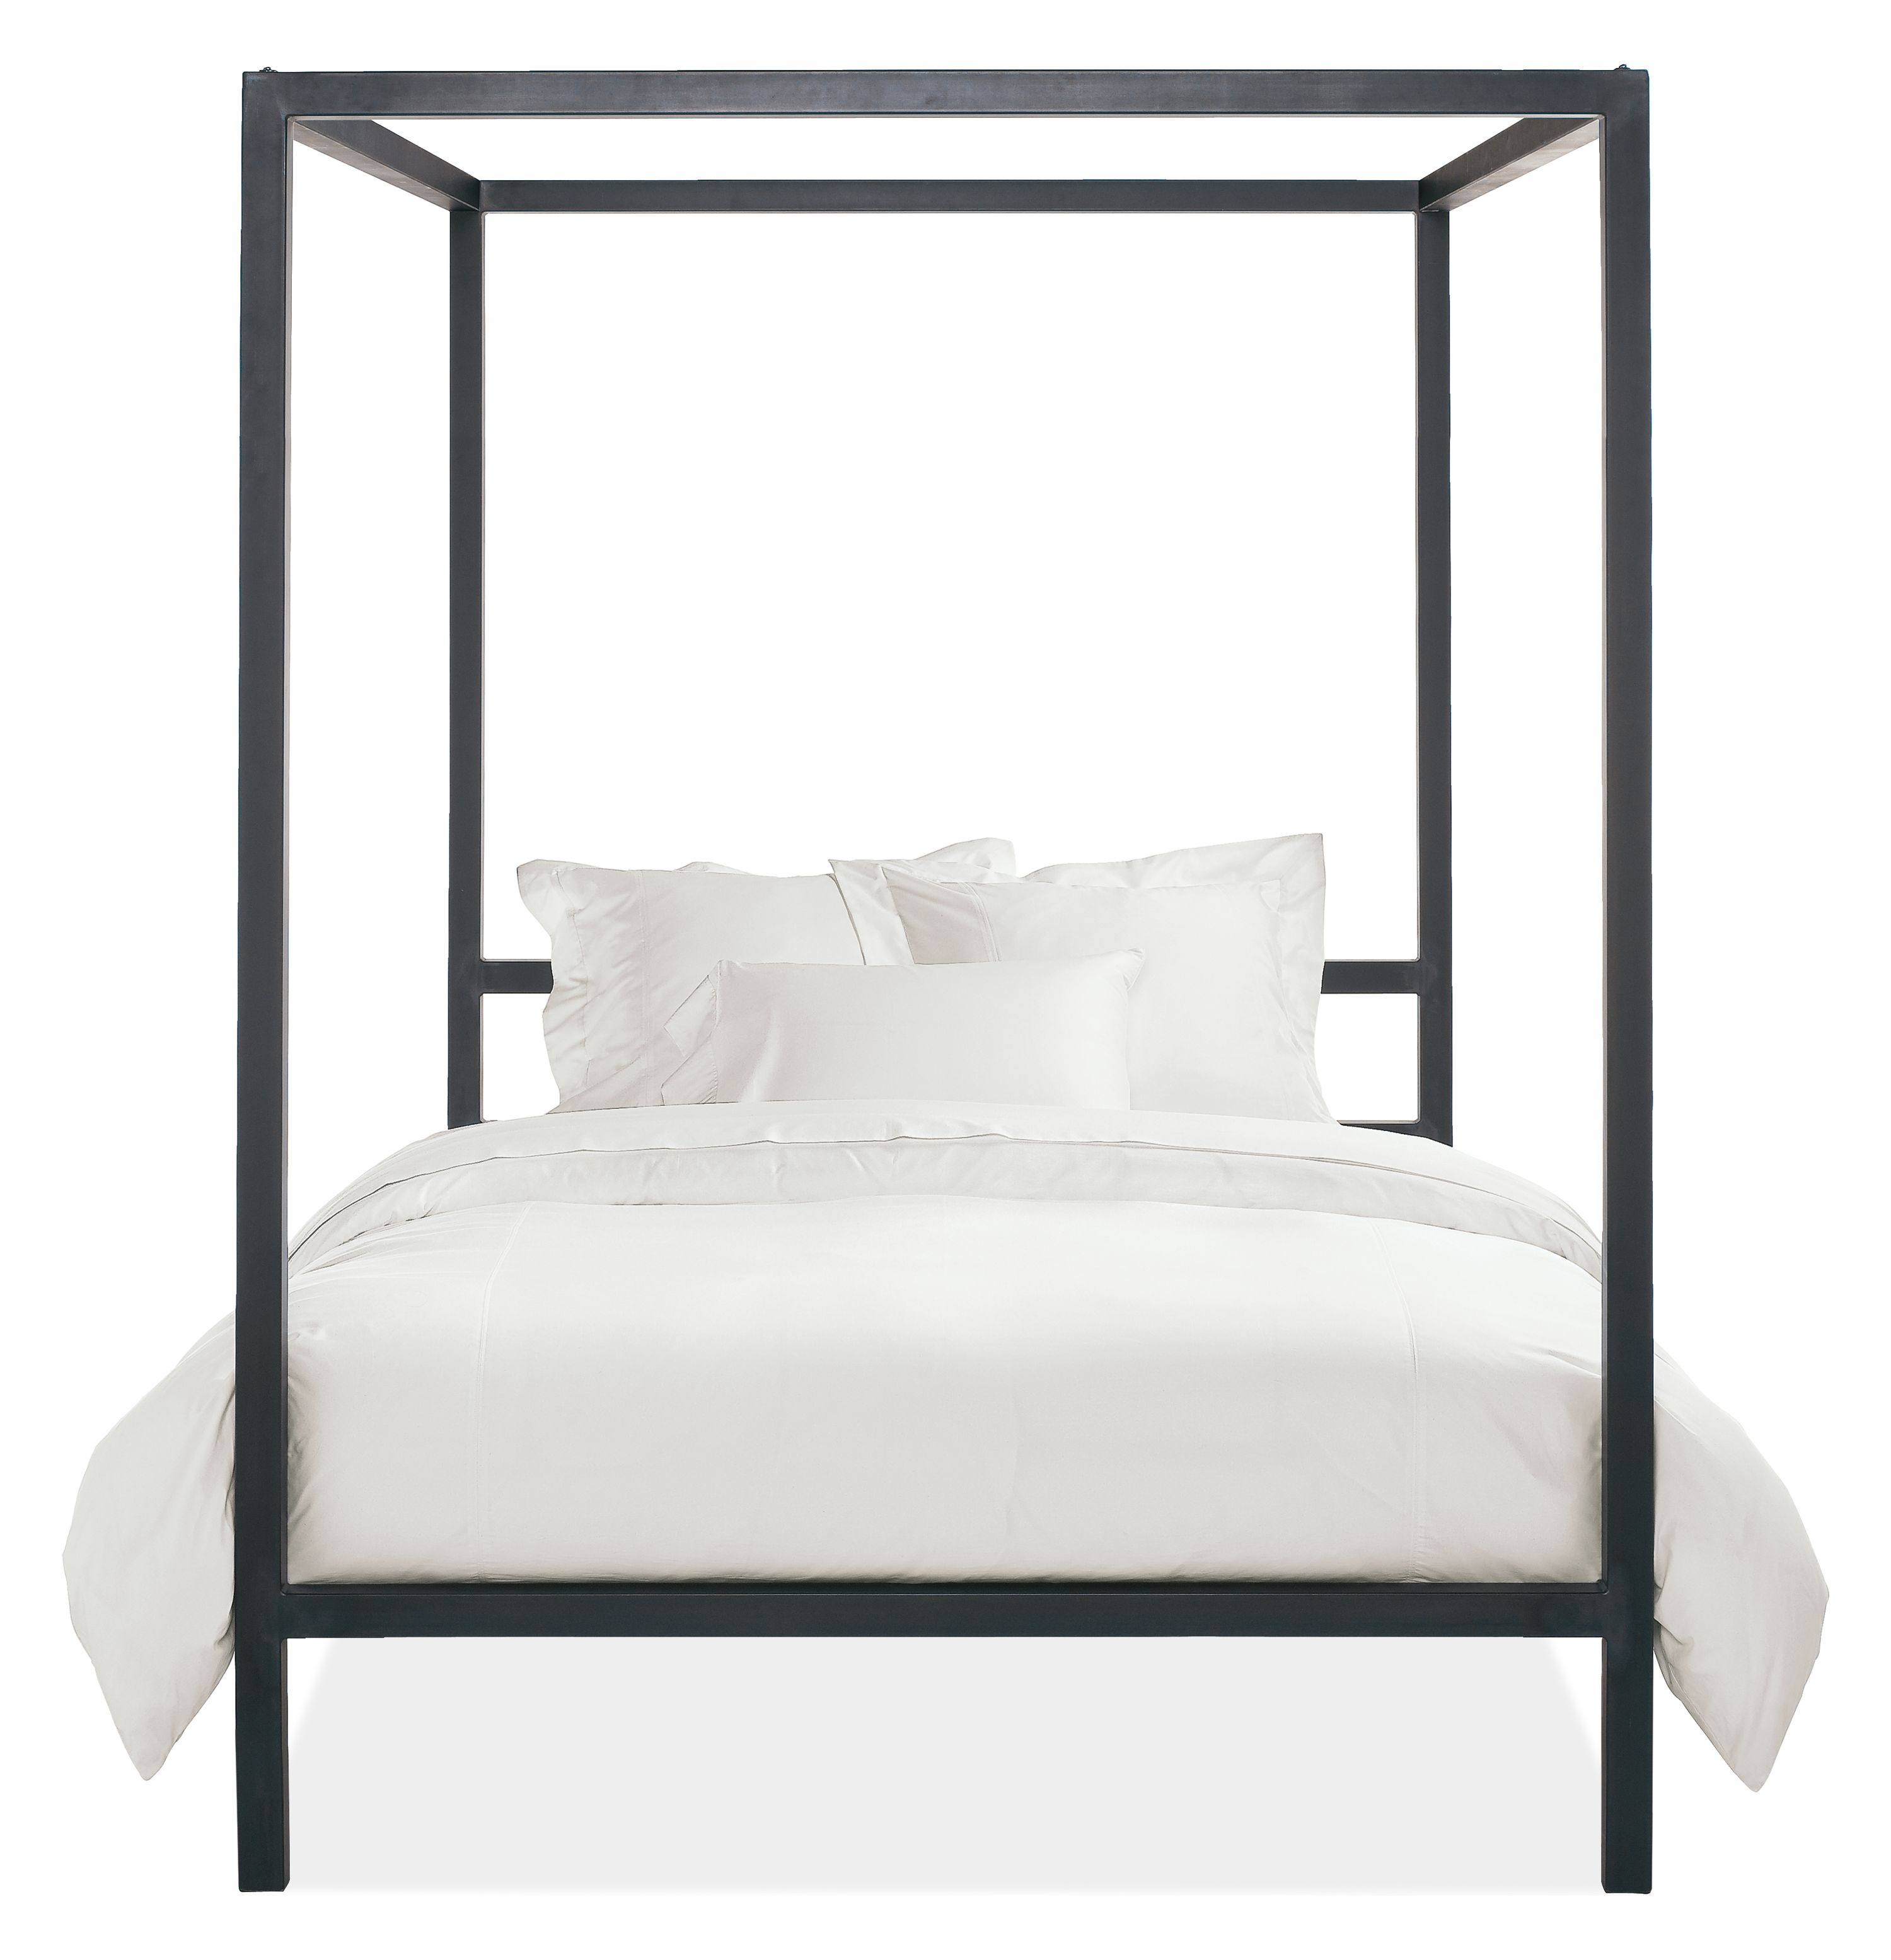 Architecture Bed Modern Contemporary Beds Modern Bedroom Furniture Room Board